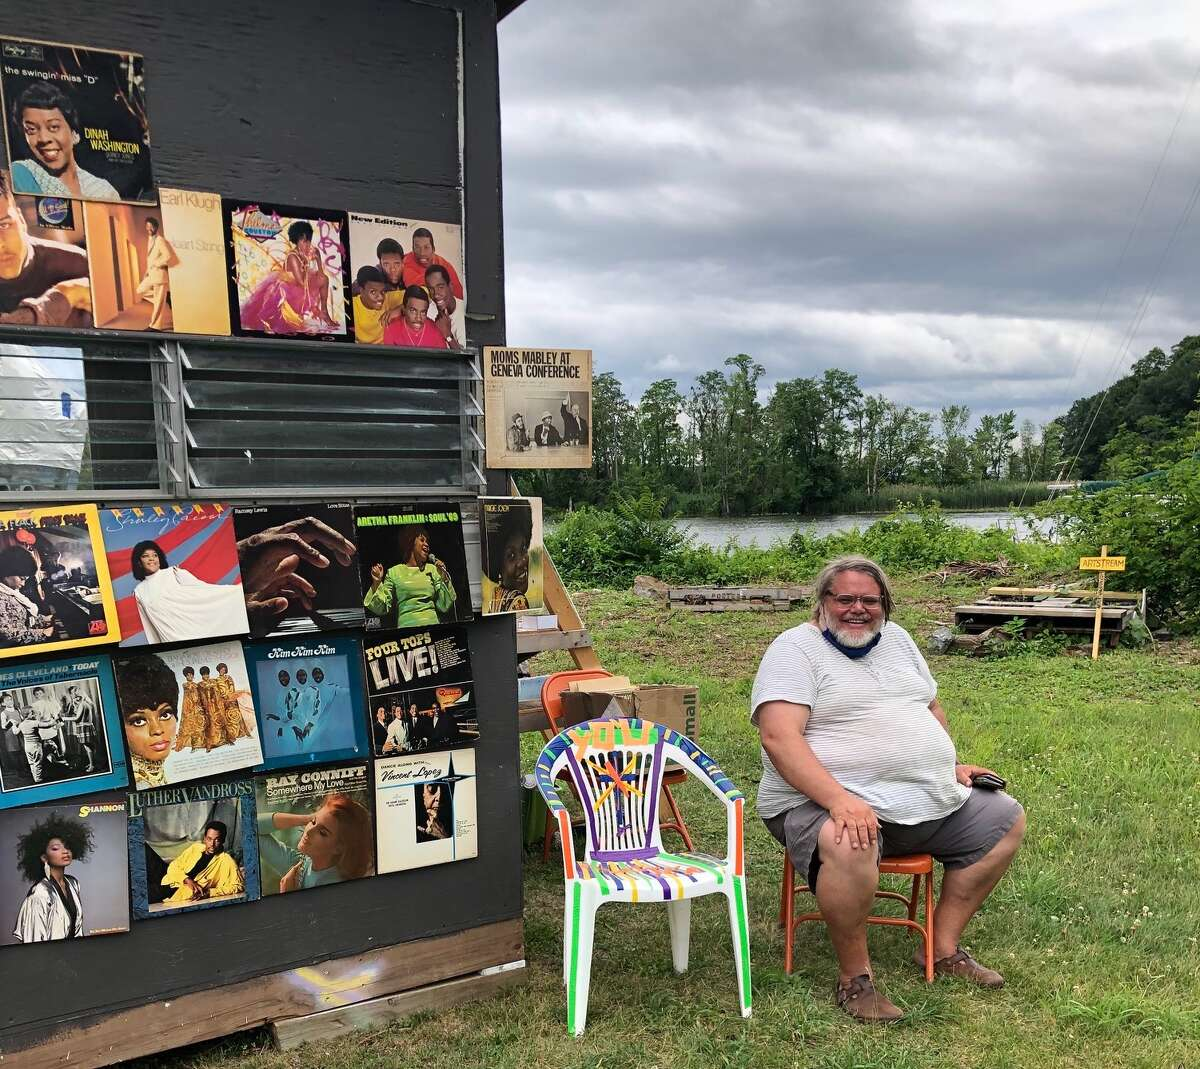 Outside of ArtPortKingston, artists like Stefan Saffer are invited to spend as little as an hour or as long as a week at this tiny artist studio, part of a program called Habitat for Artists.